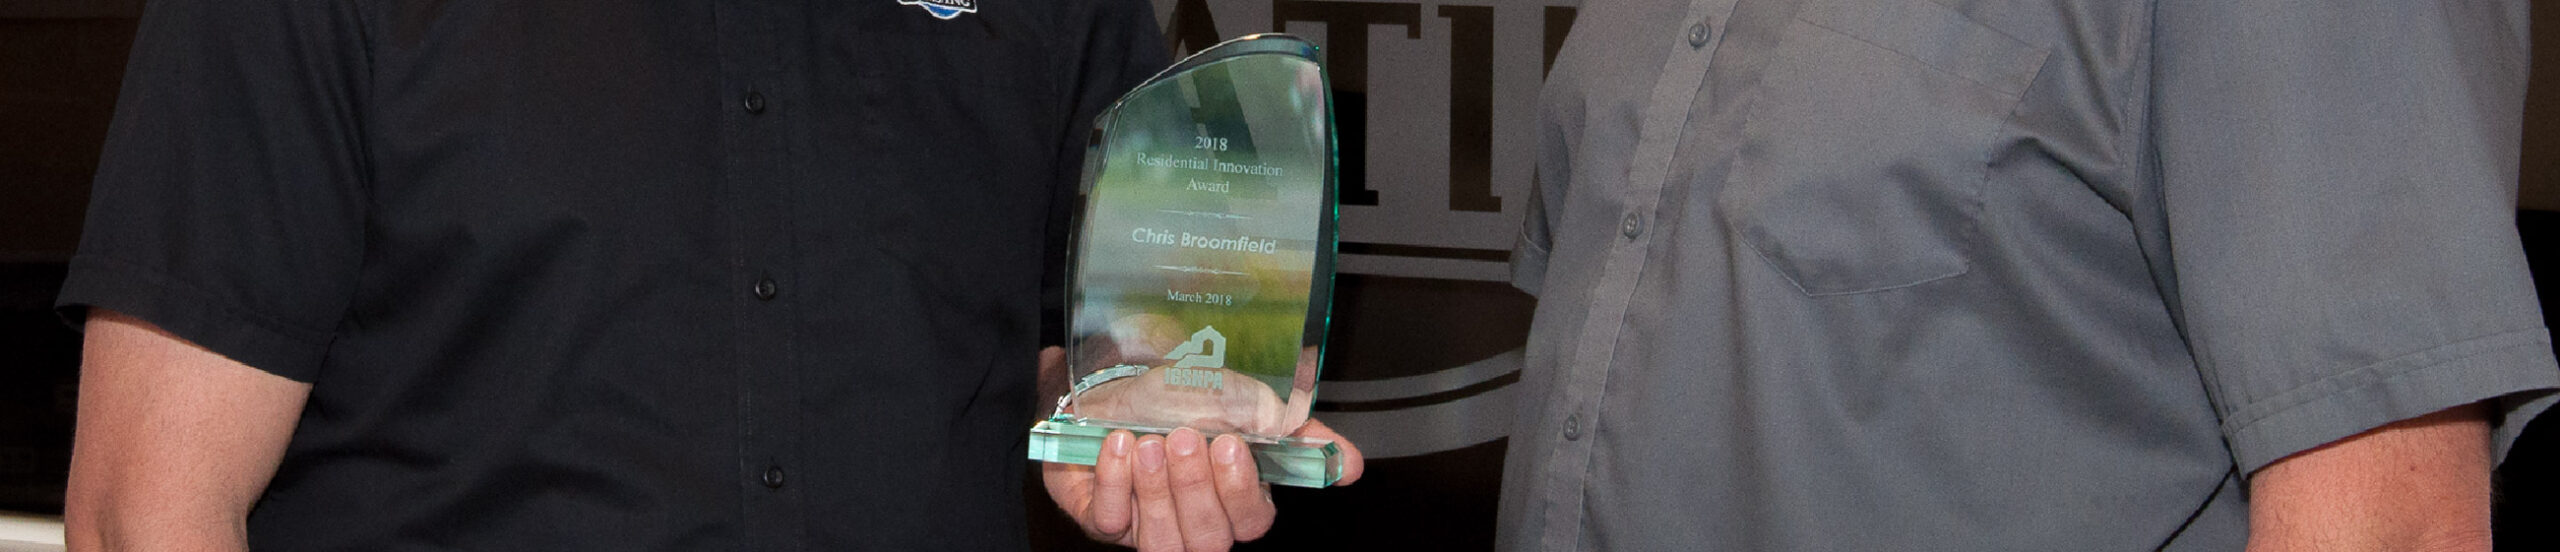 Close up of a glass award being held by two men